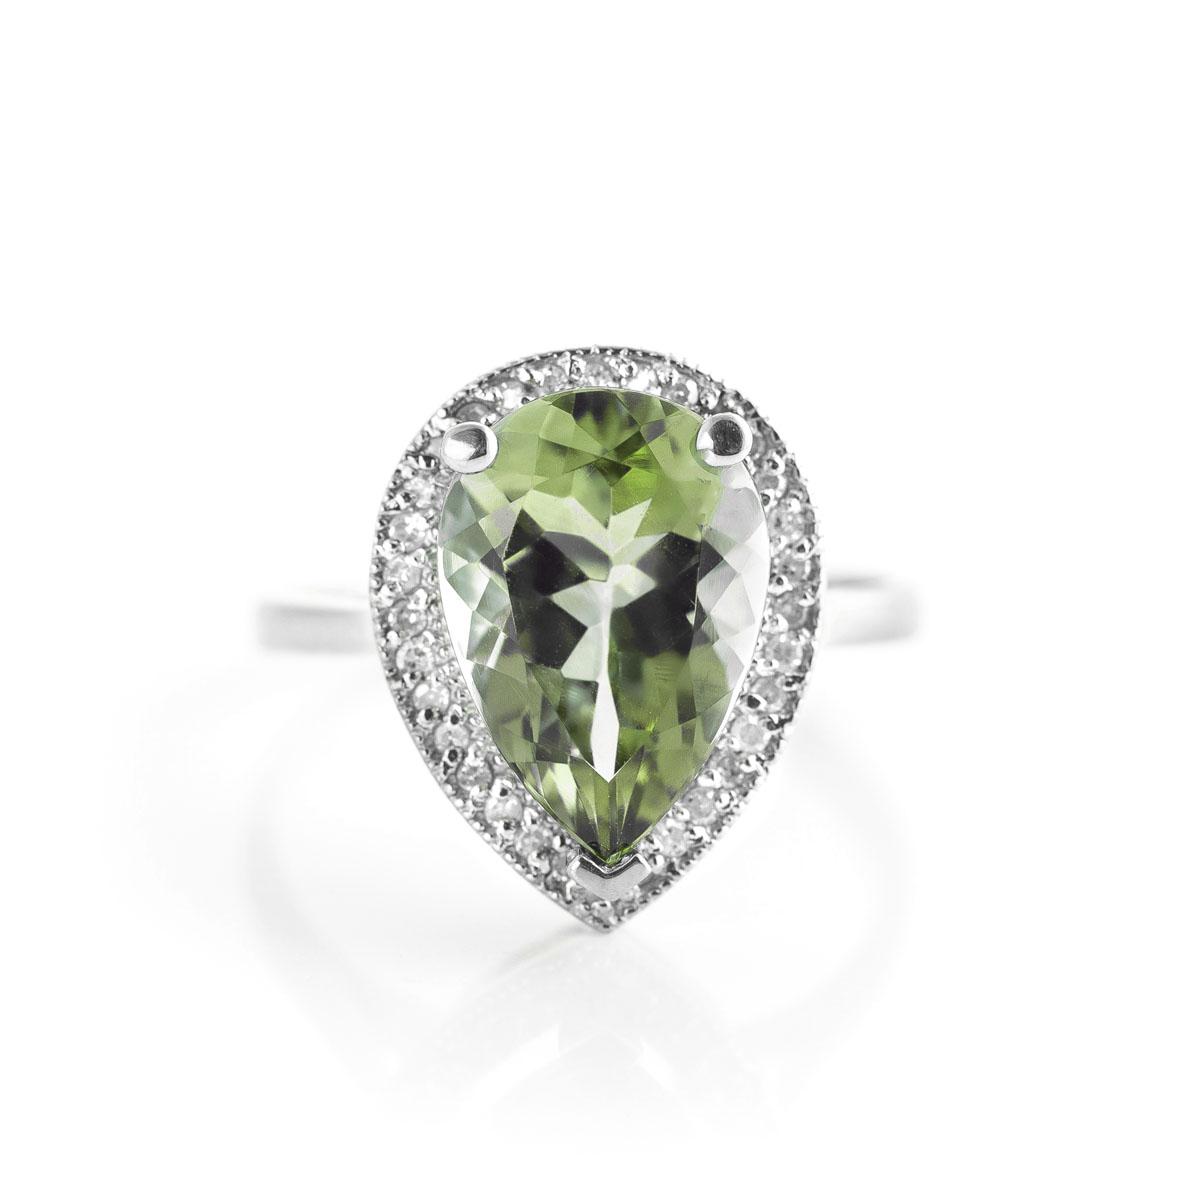 Green Amethyst Halo Ring 3.41 ctw in Sterling Silver